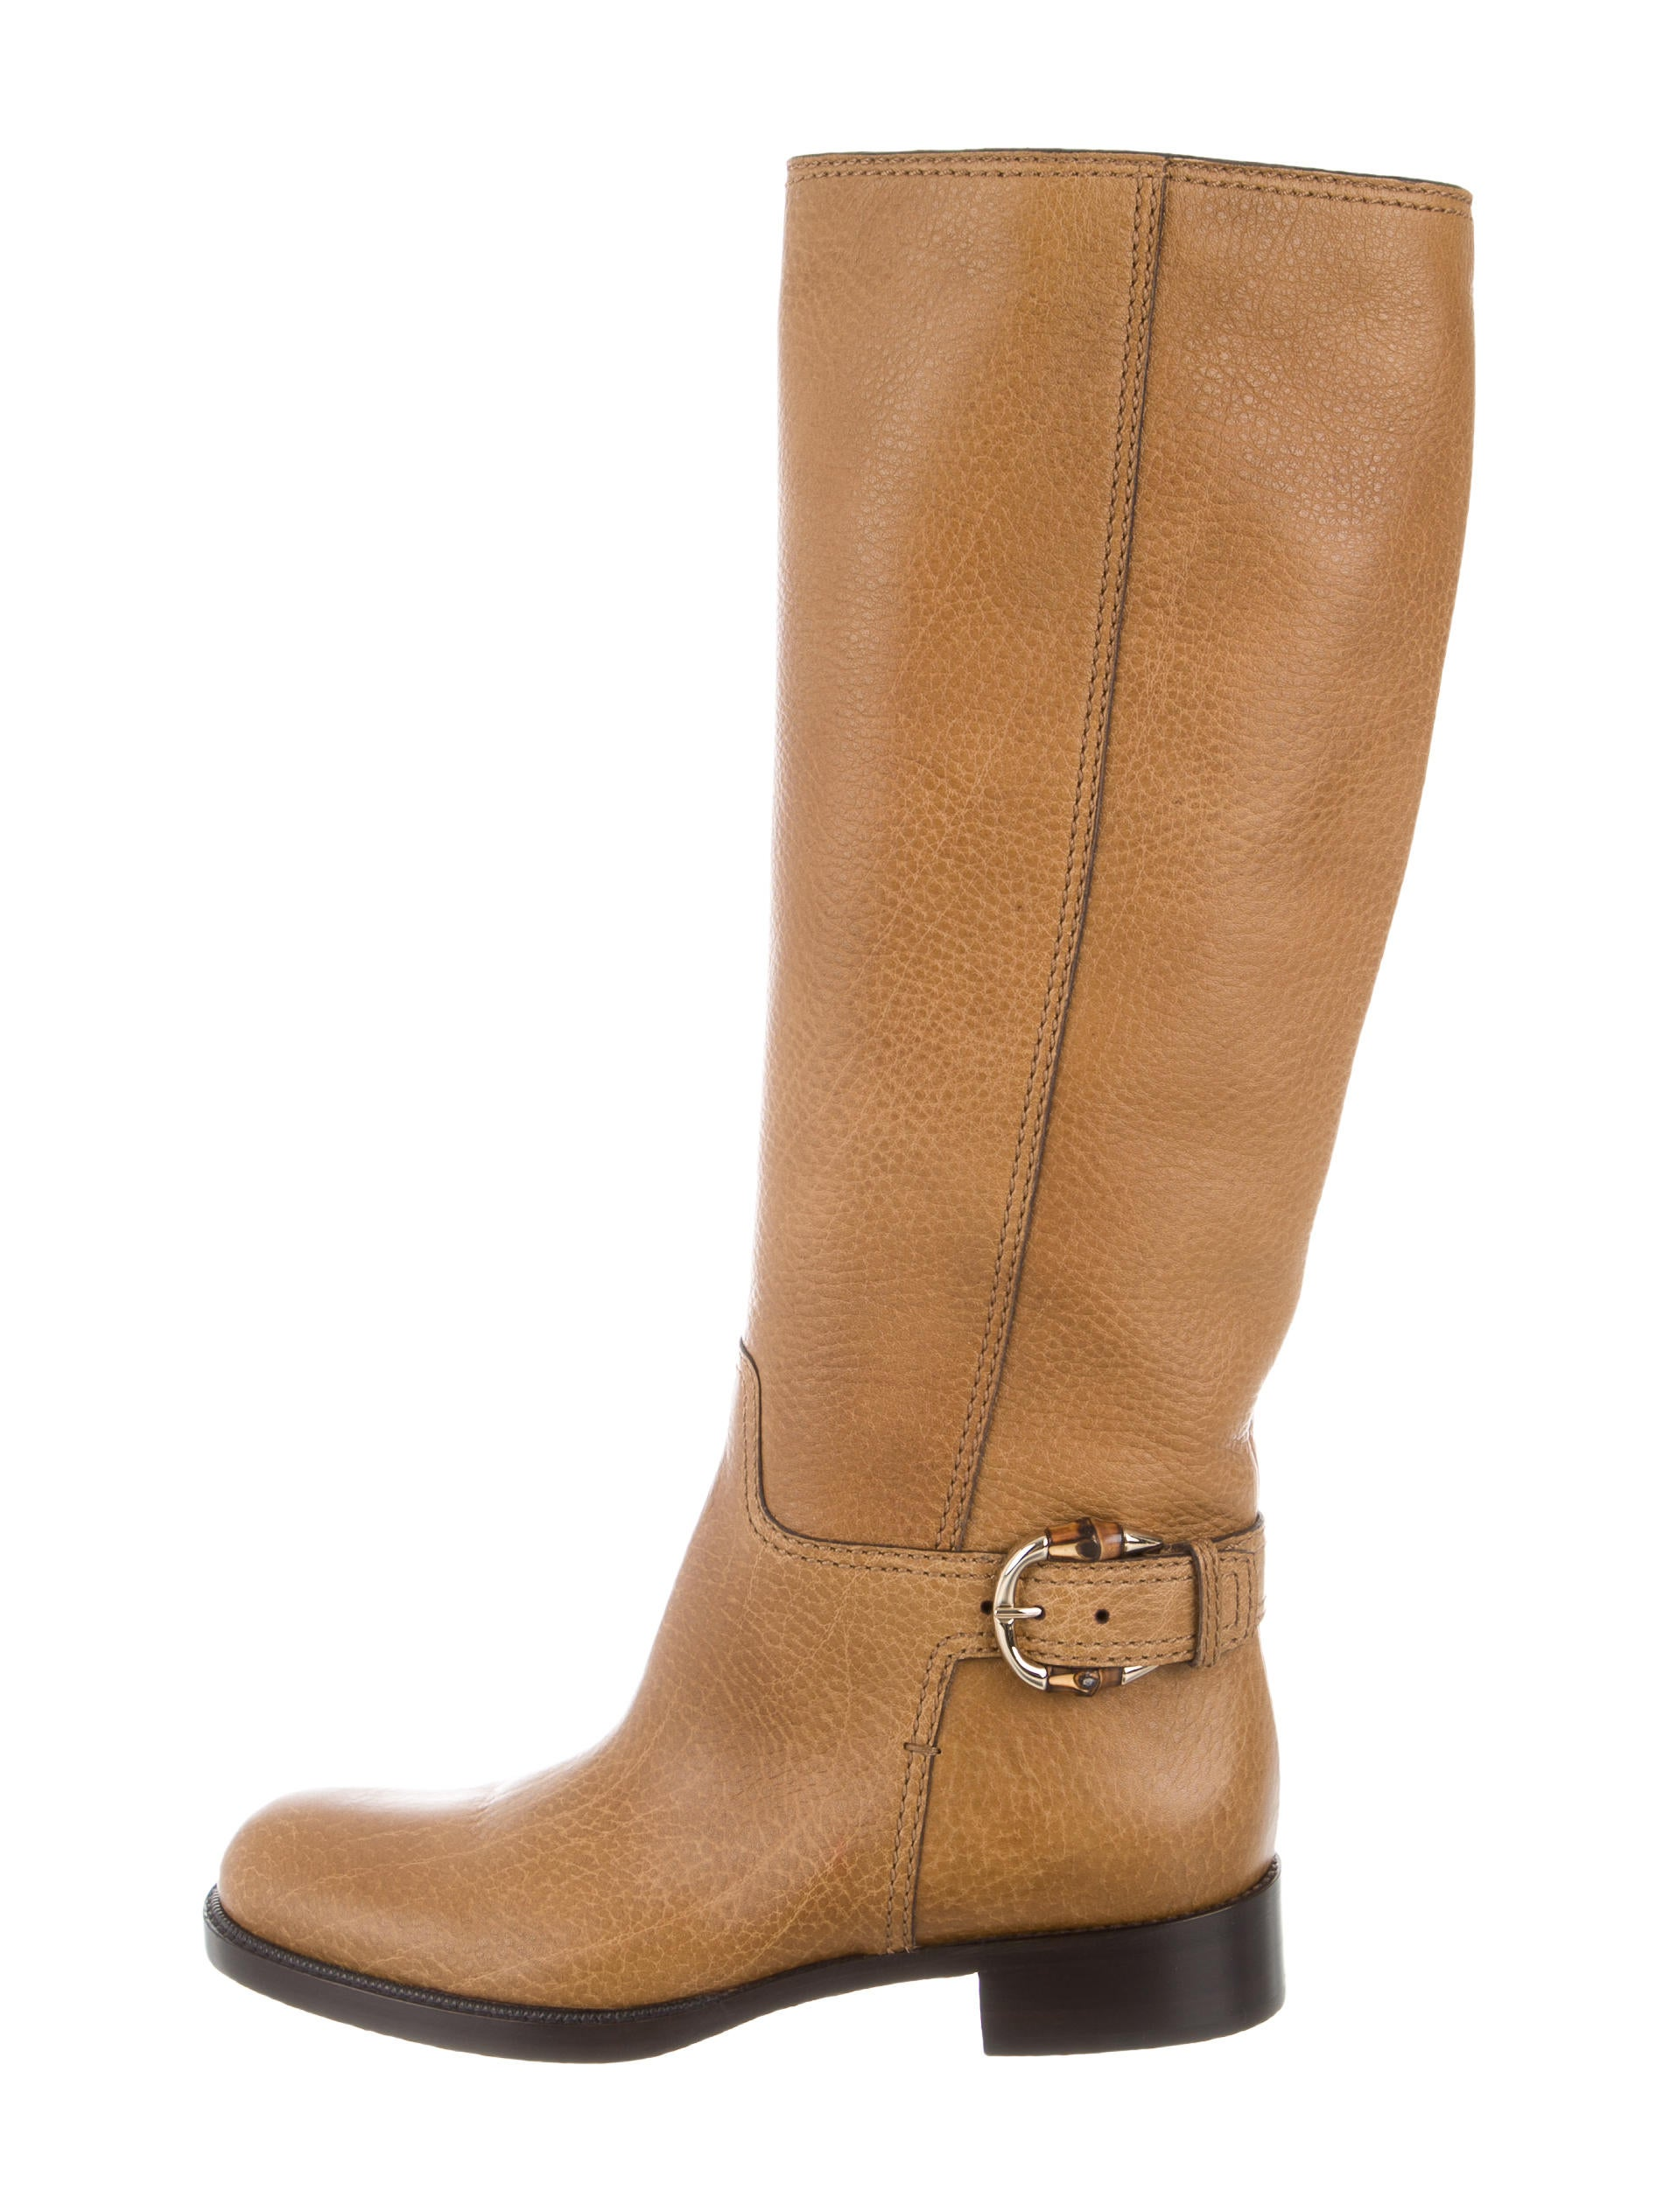 gucci bamboo buckle boots w tags shoes guc131063